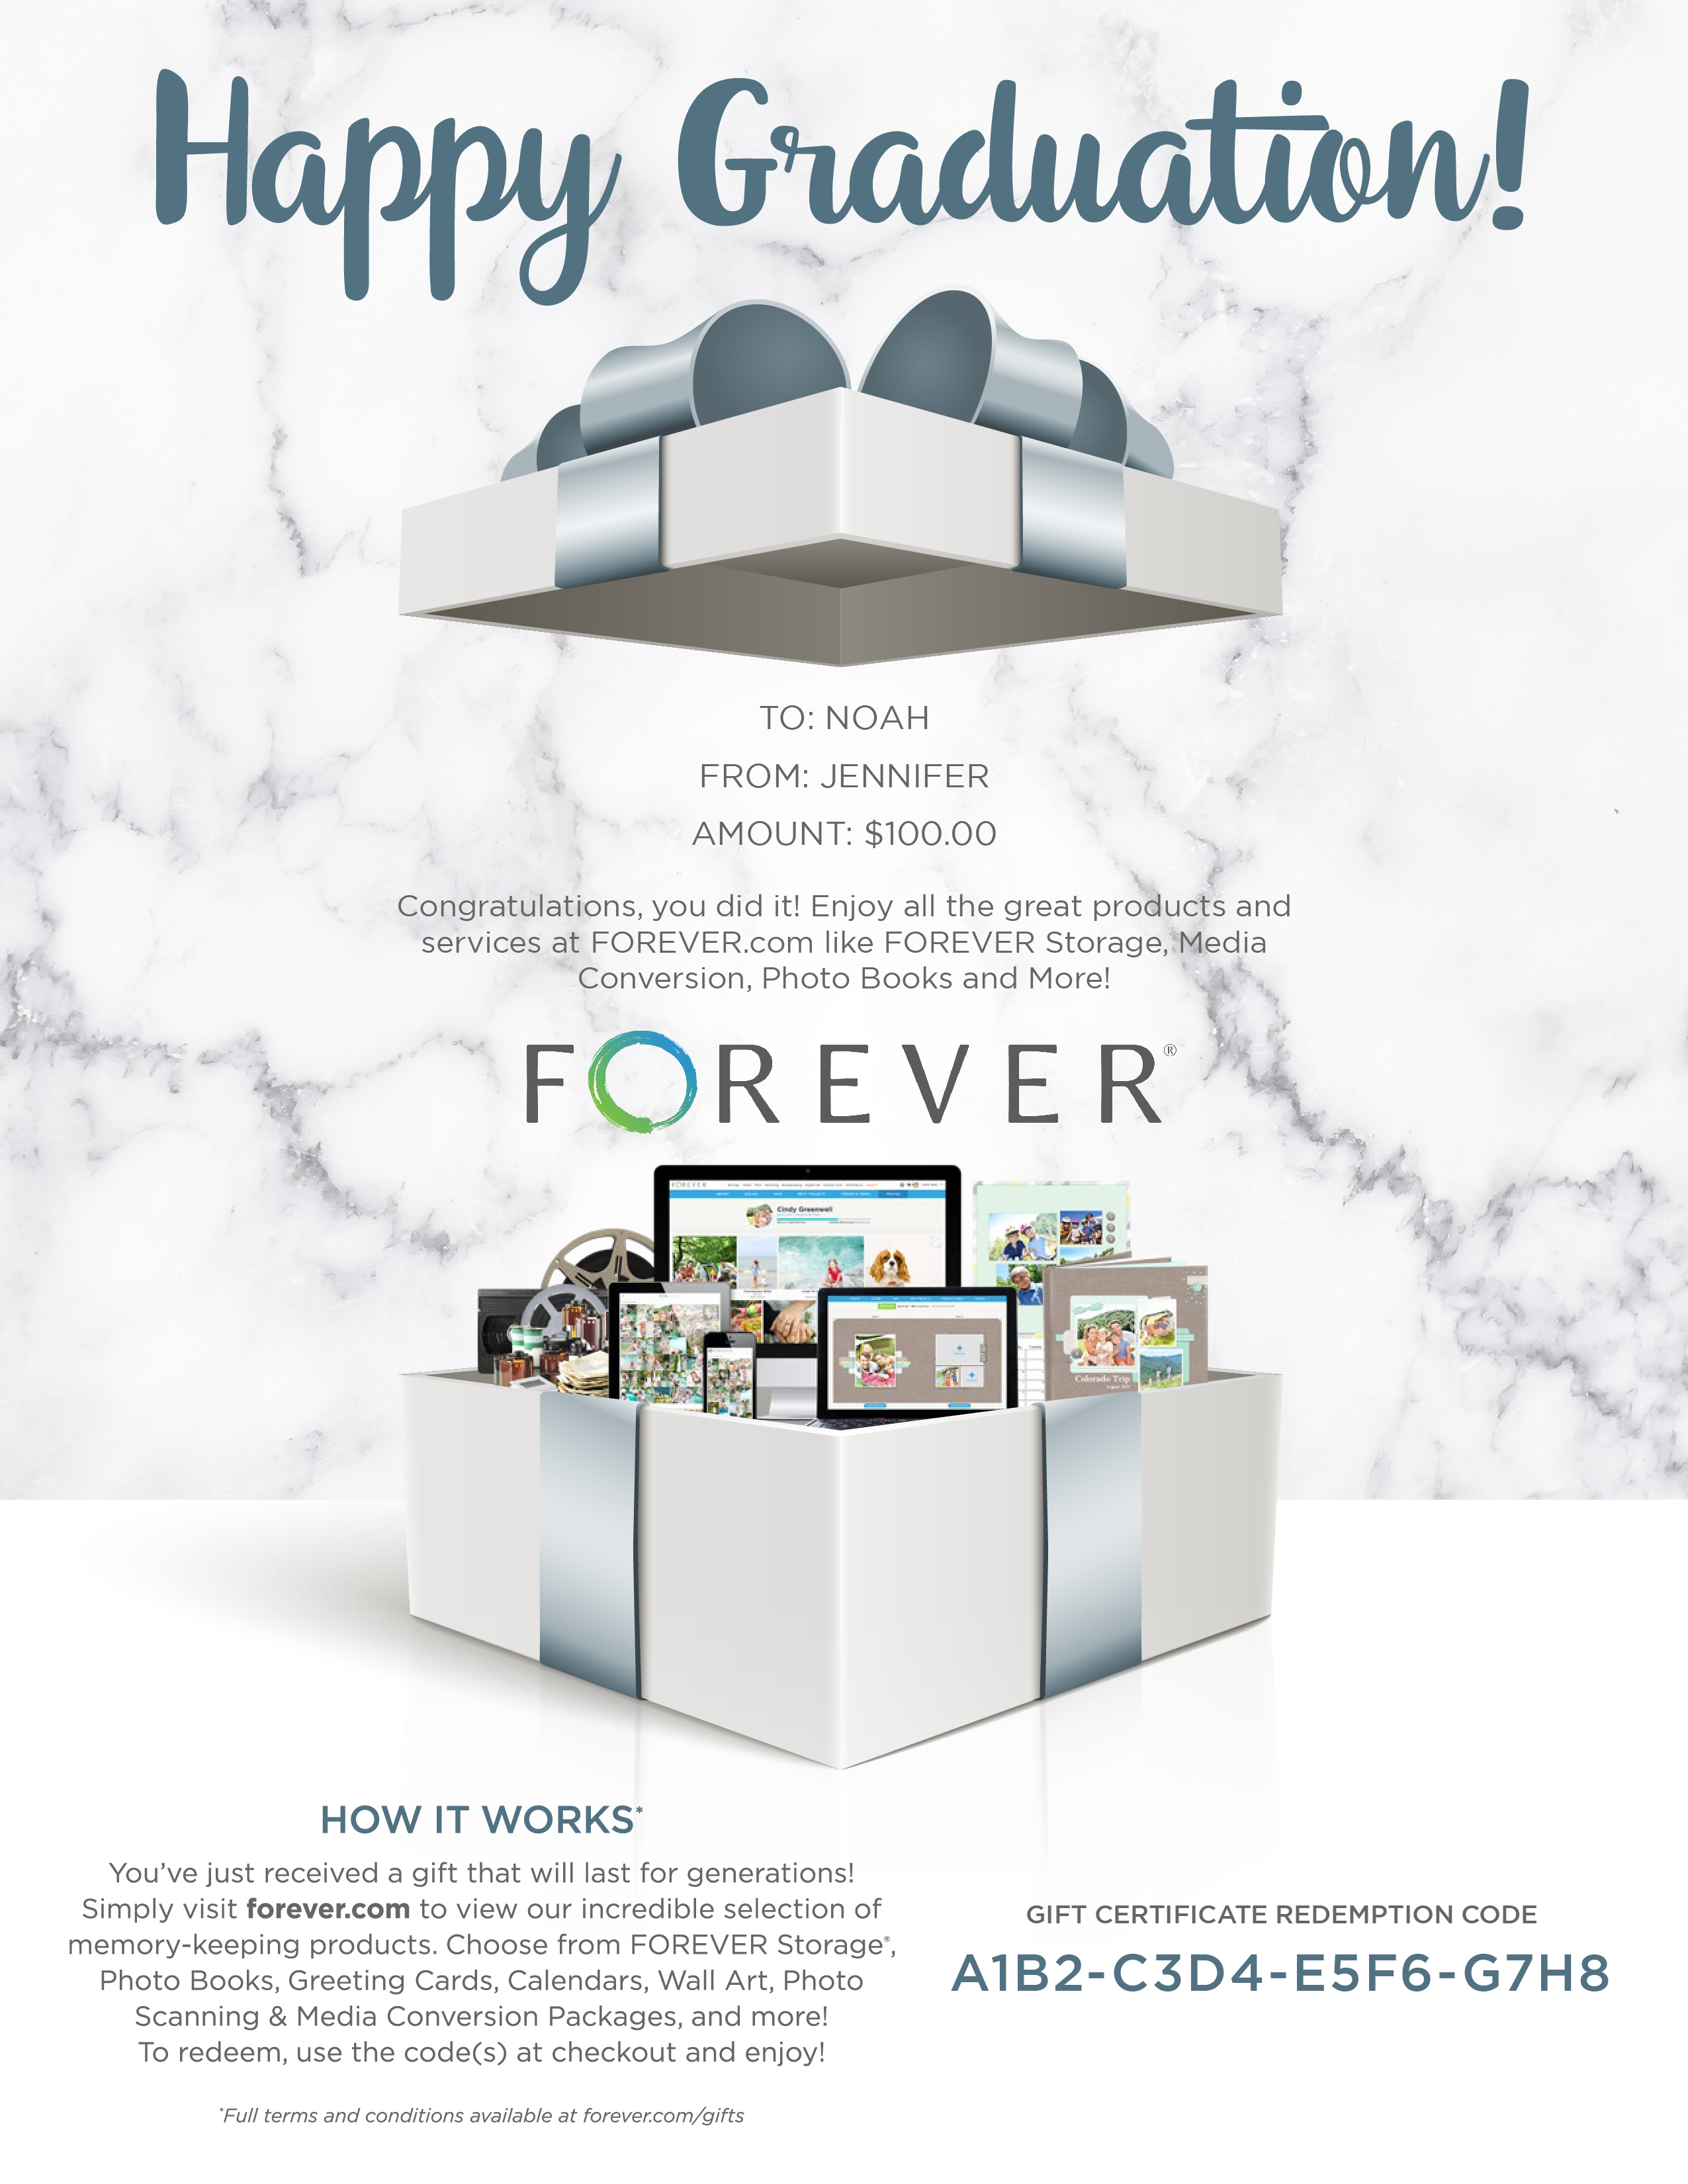 FOREVER Gift Certificate - Graduation